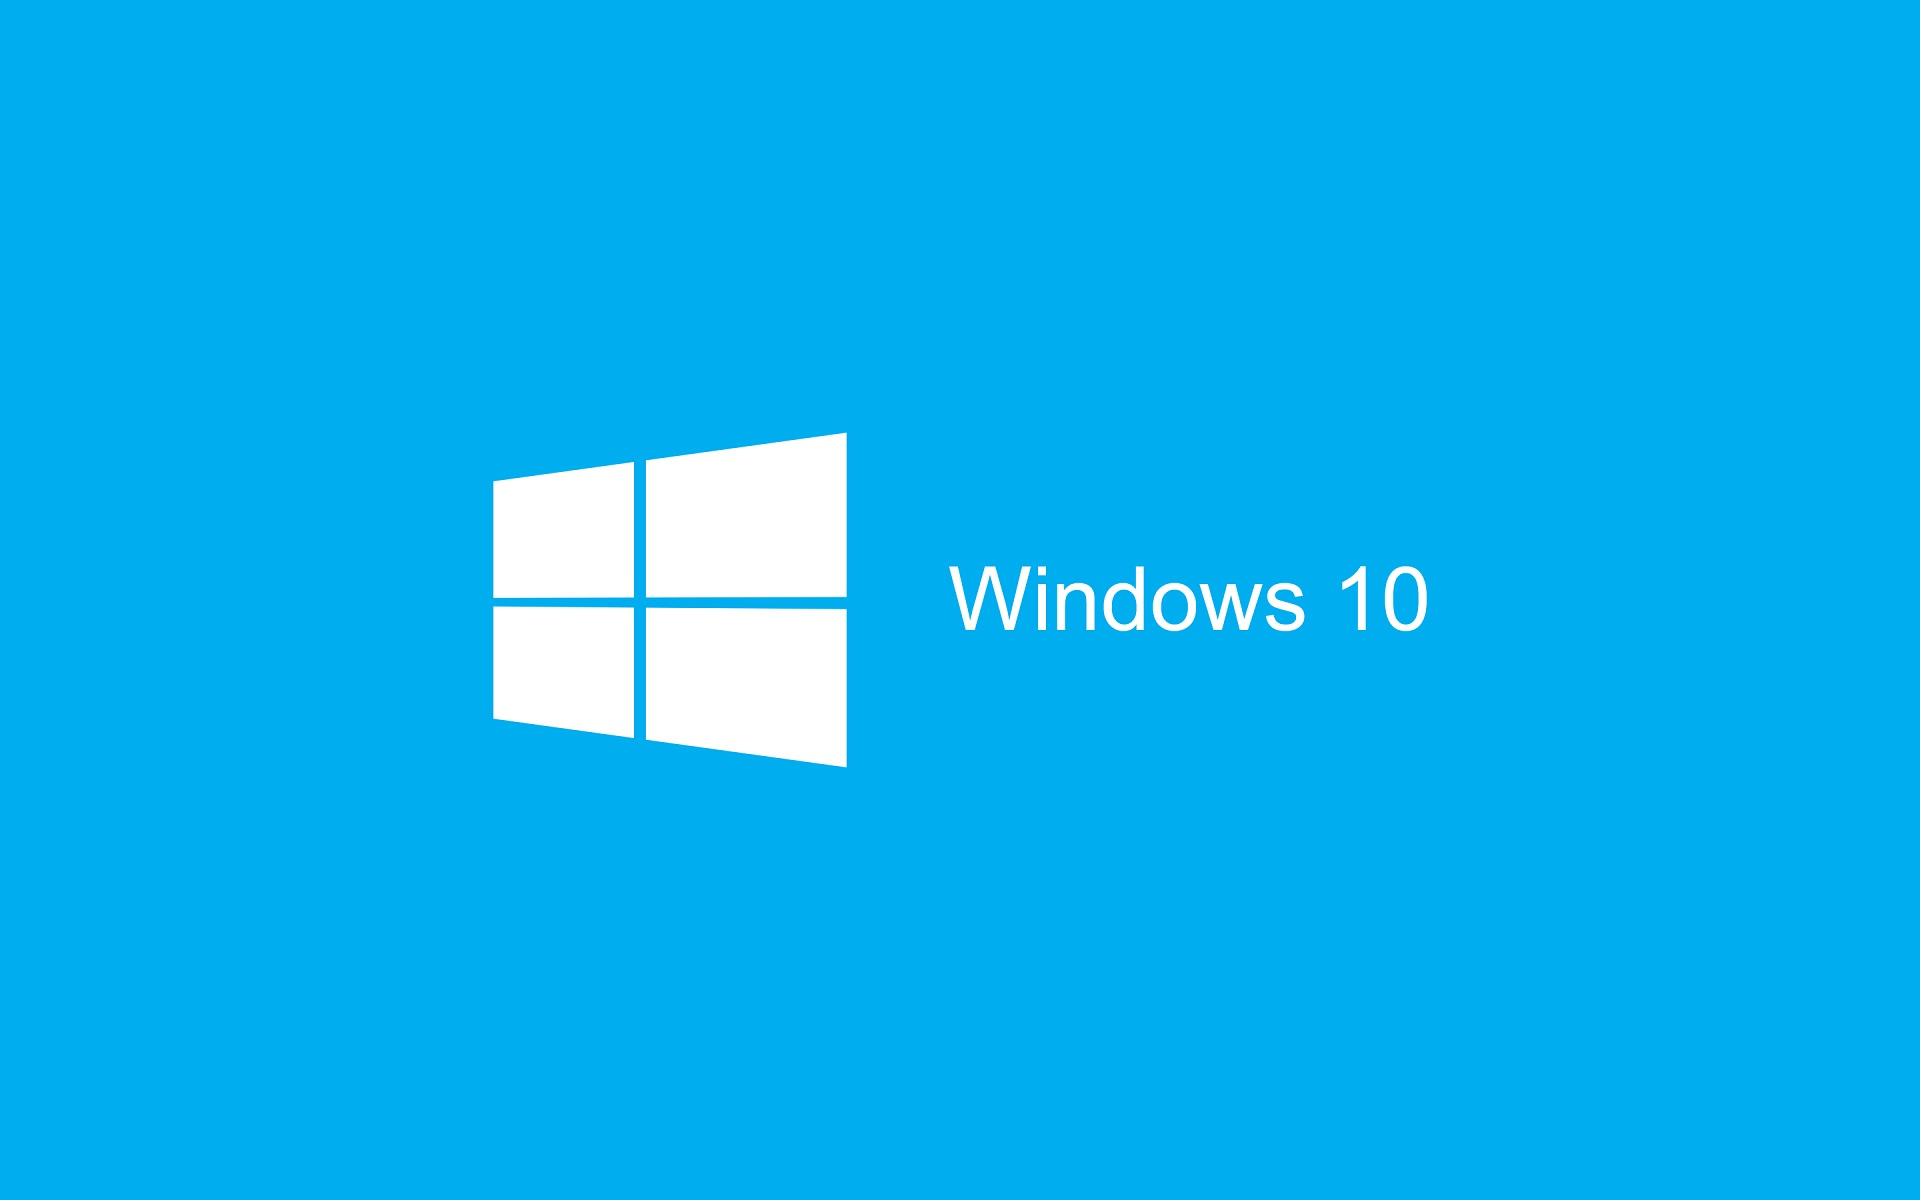 microsoft 39 s latest windows 10 update broken update fails